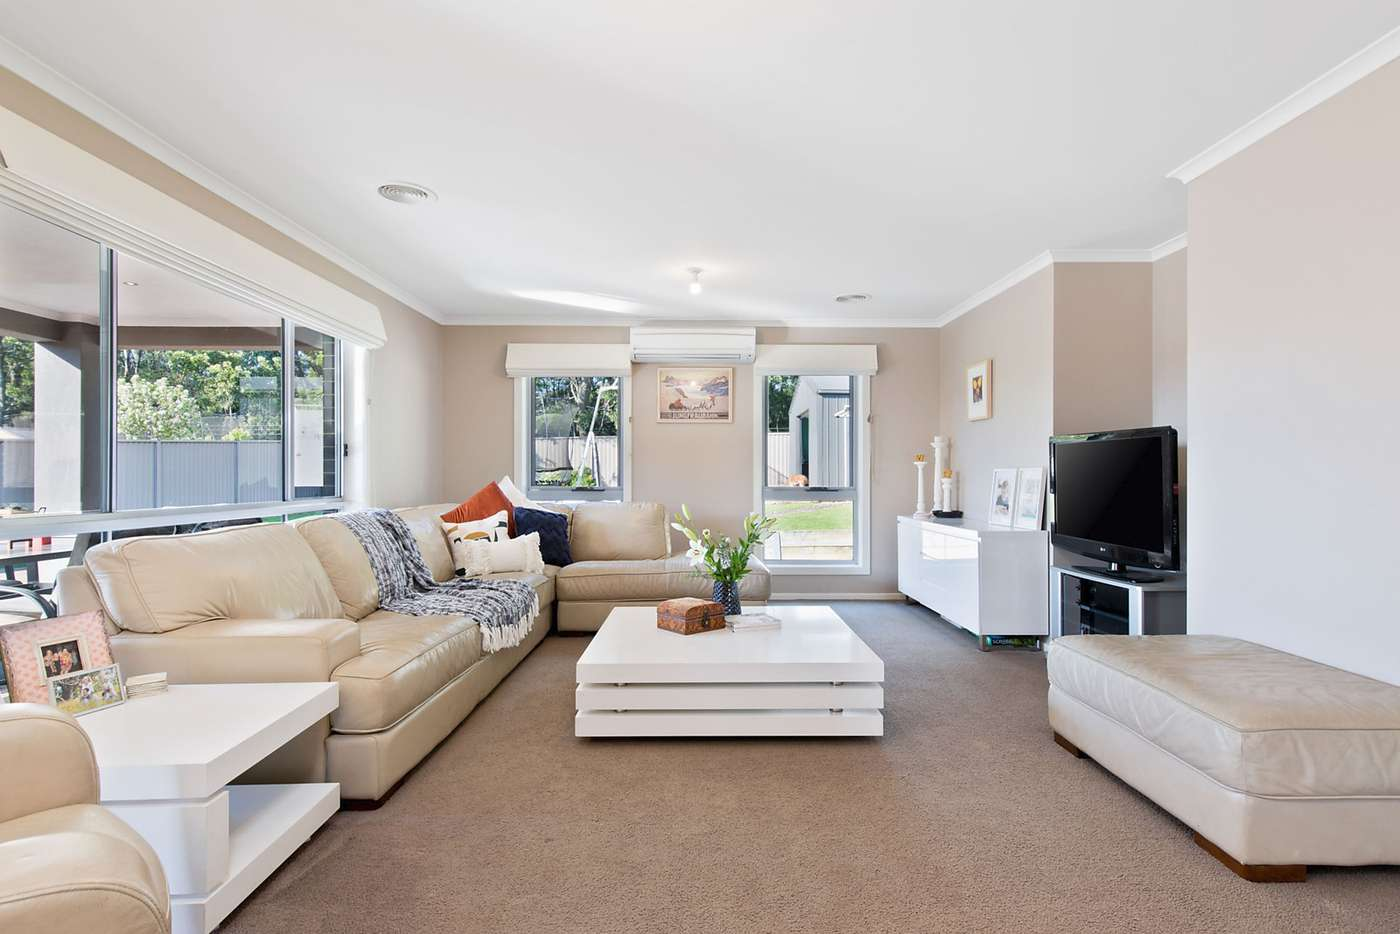 Sixth view of Homely house listing, 8 Pinevale Way, Ballarat North VIC 3350